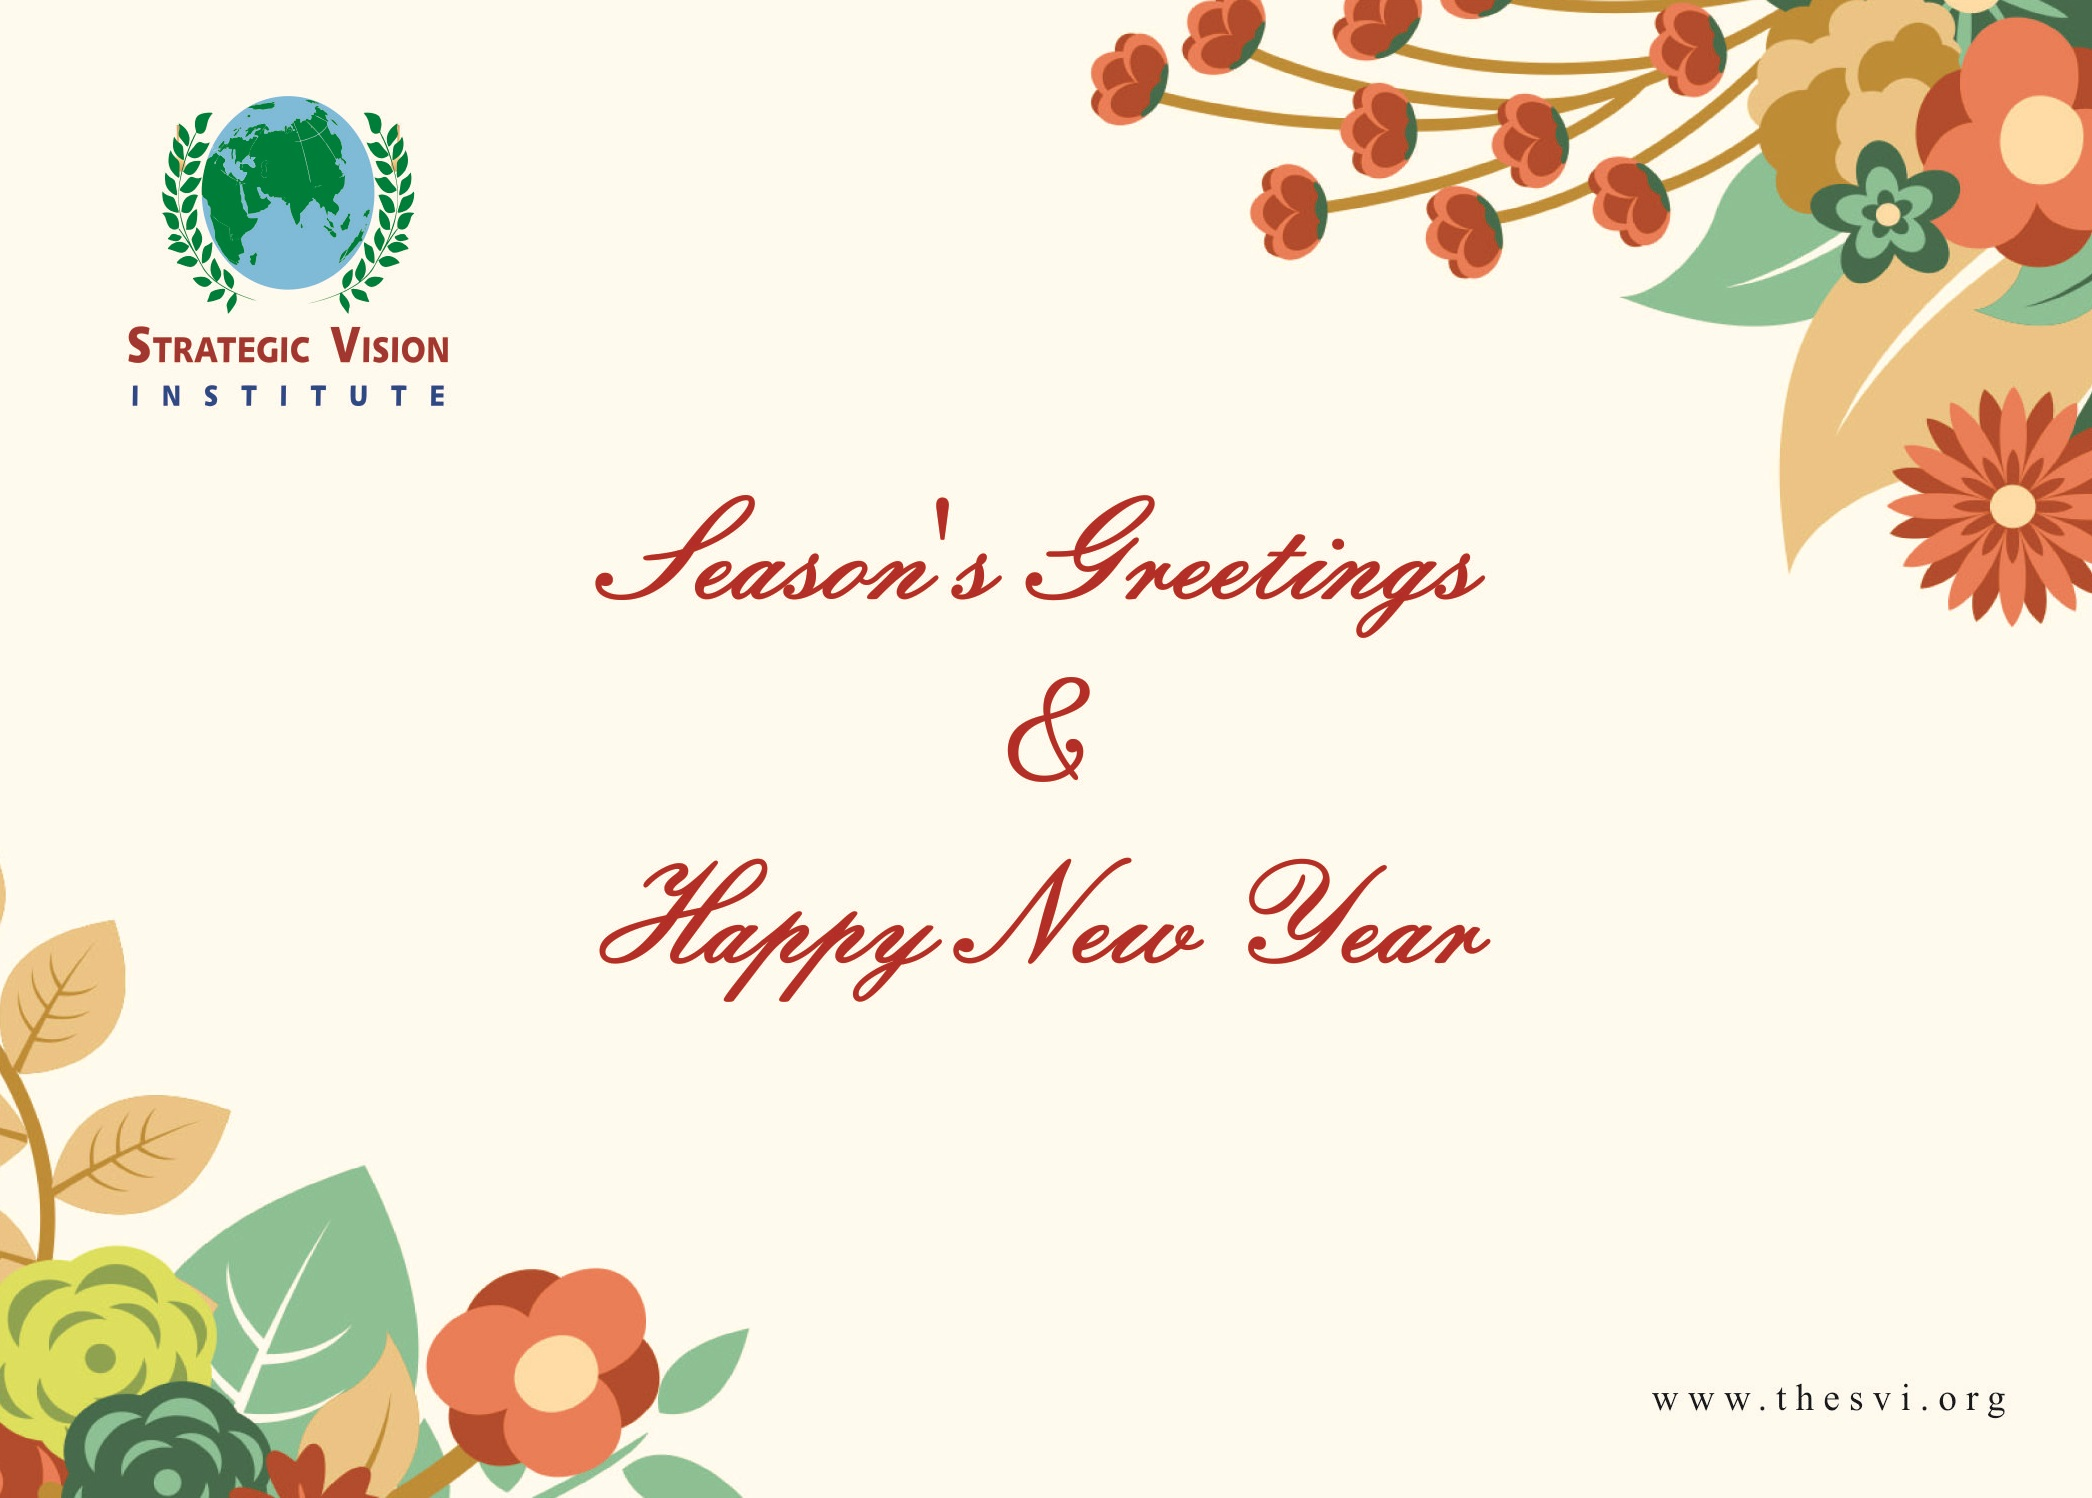 Seasons-Greetings-Happy-New-Year-2021